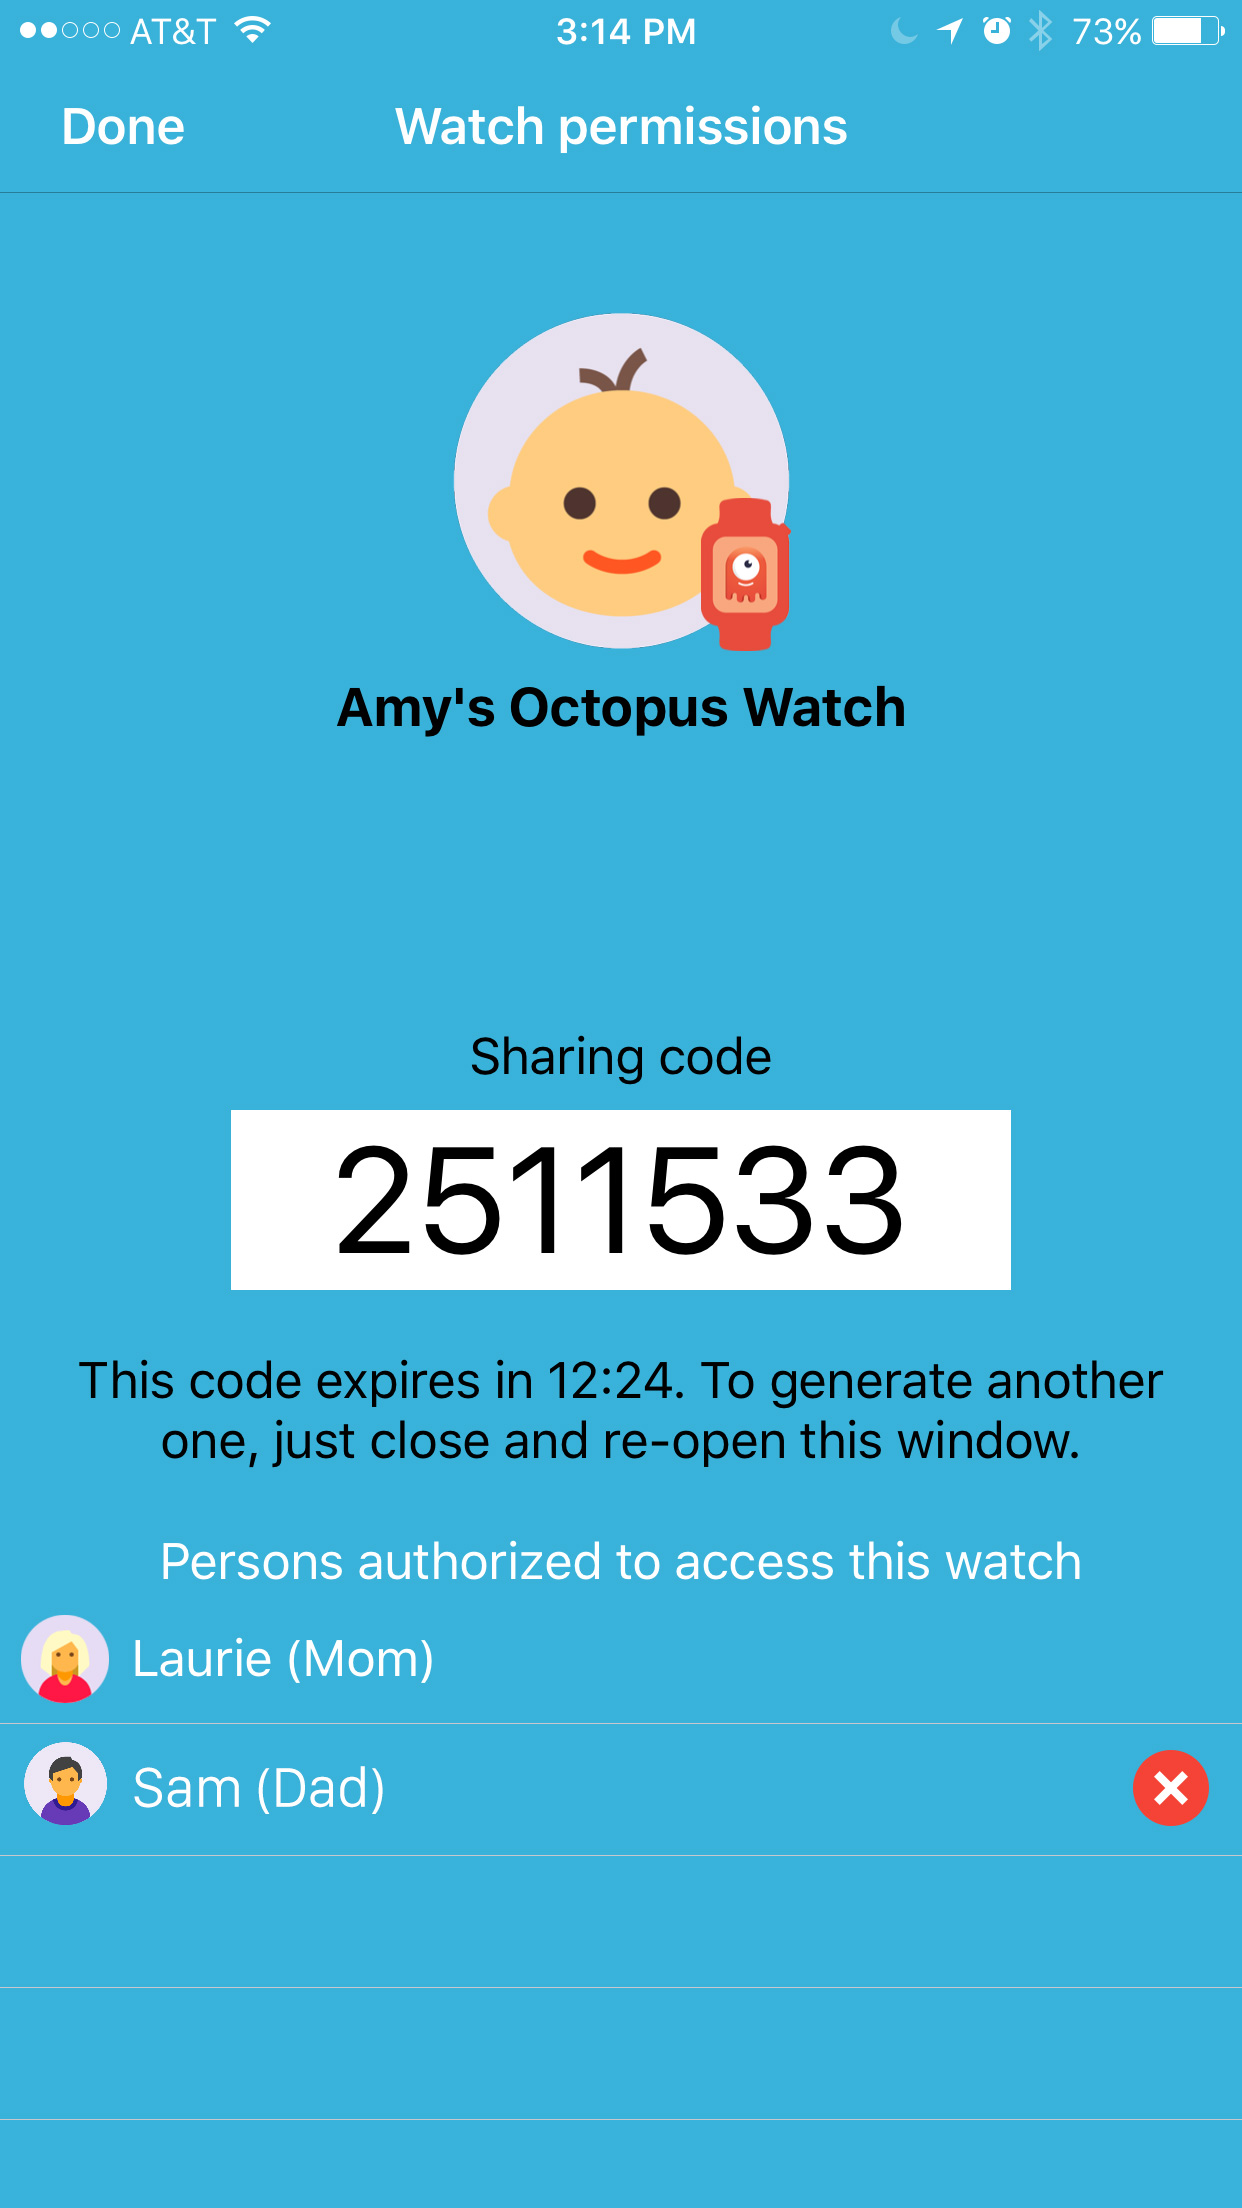 Octopus watch app: sharing code for parenting aide